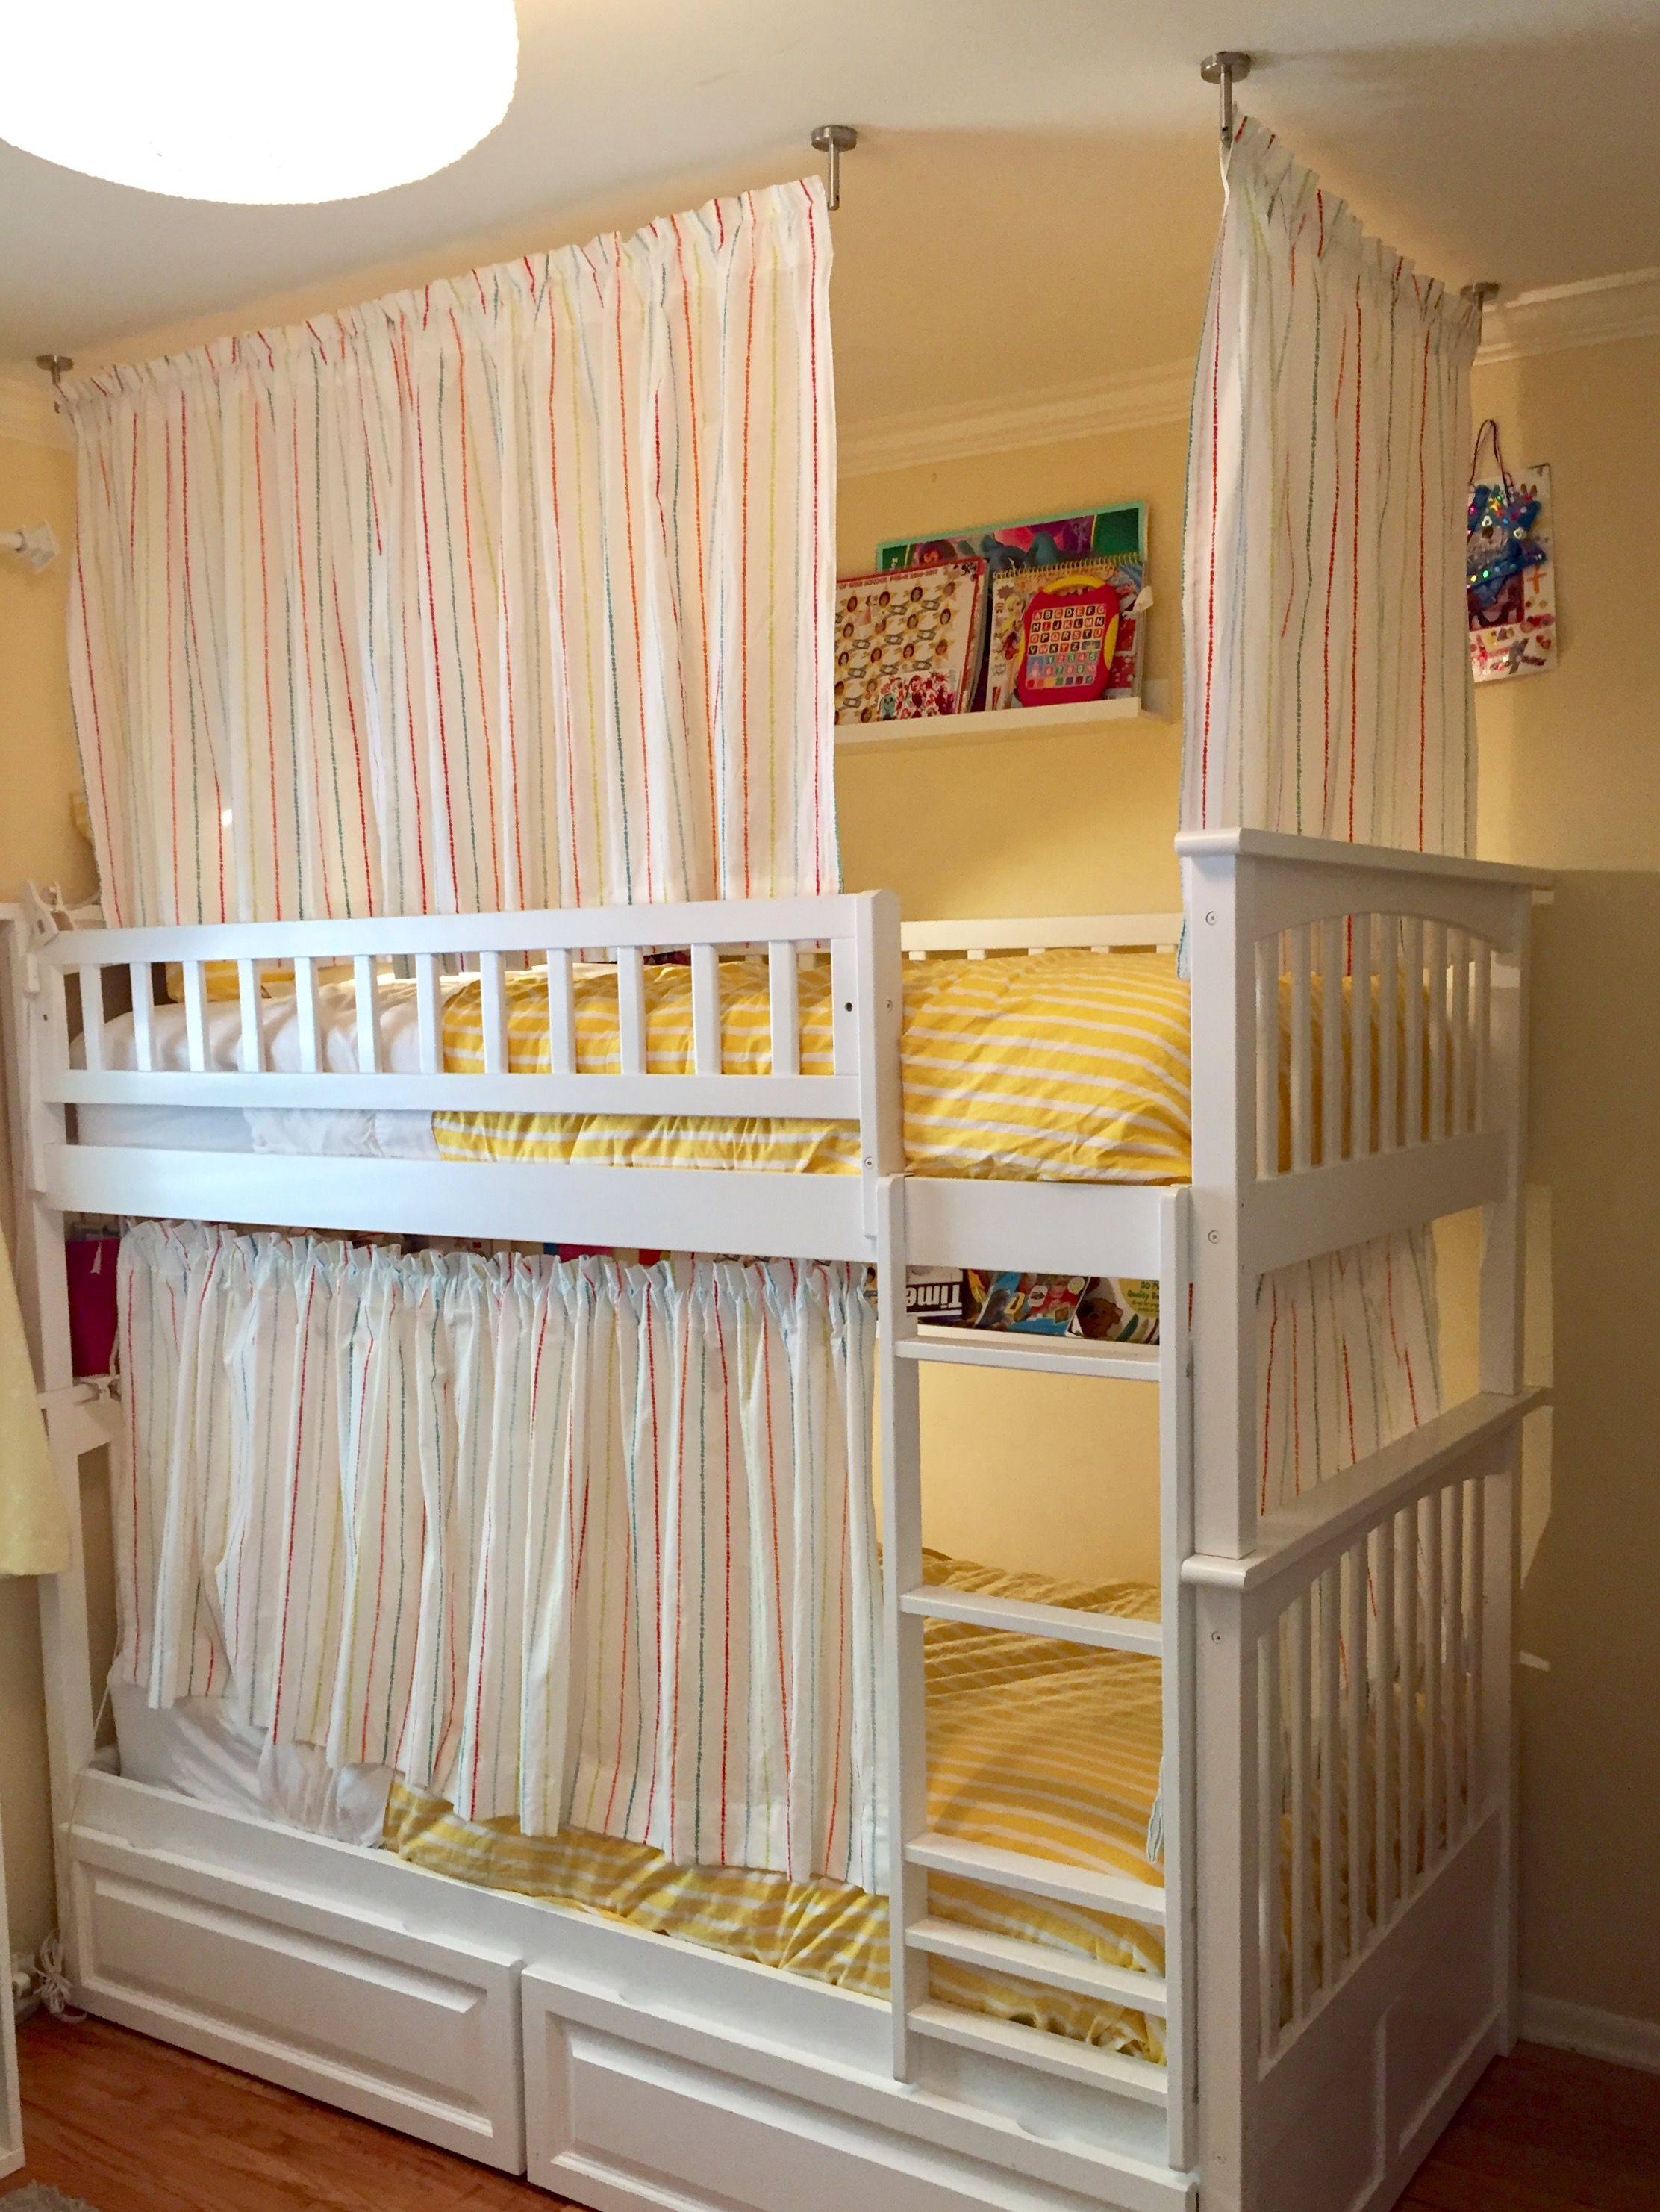 Bunk Bed Curtains Using Ikea Products Dignitet Wire Curtain Rod